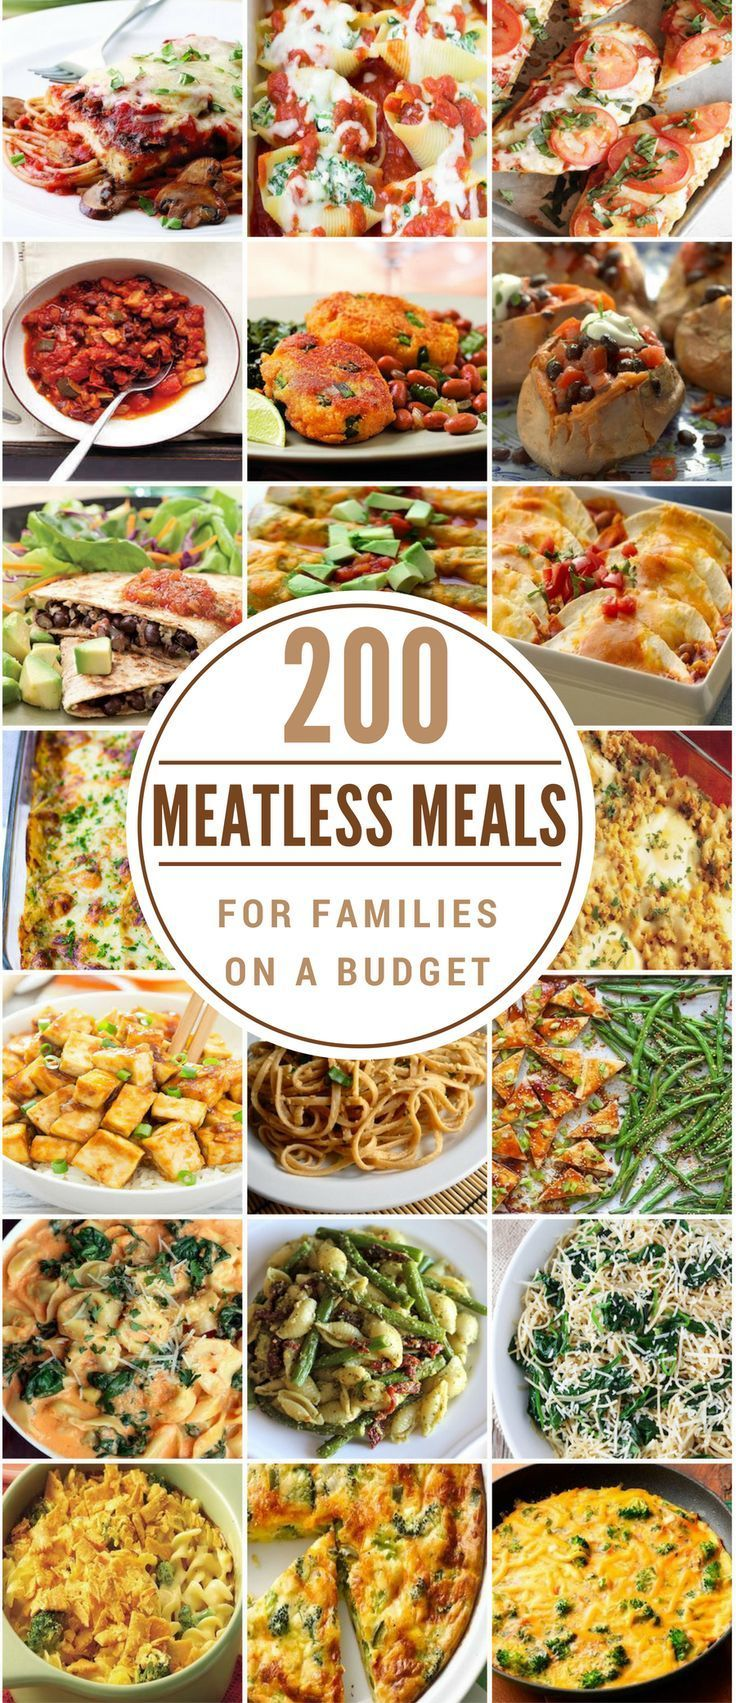 200 Meatless Meals For Families On A Budget Vegan